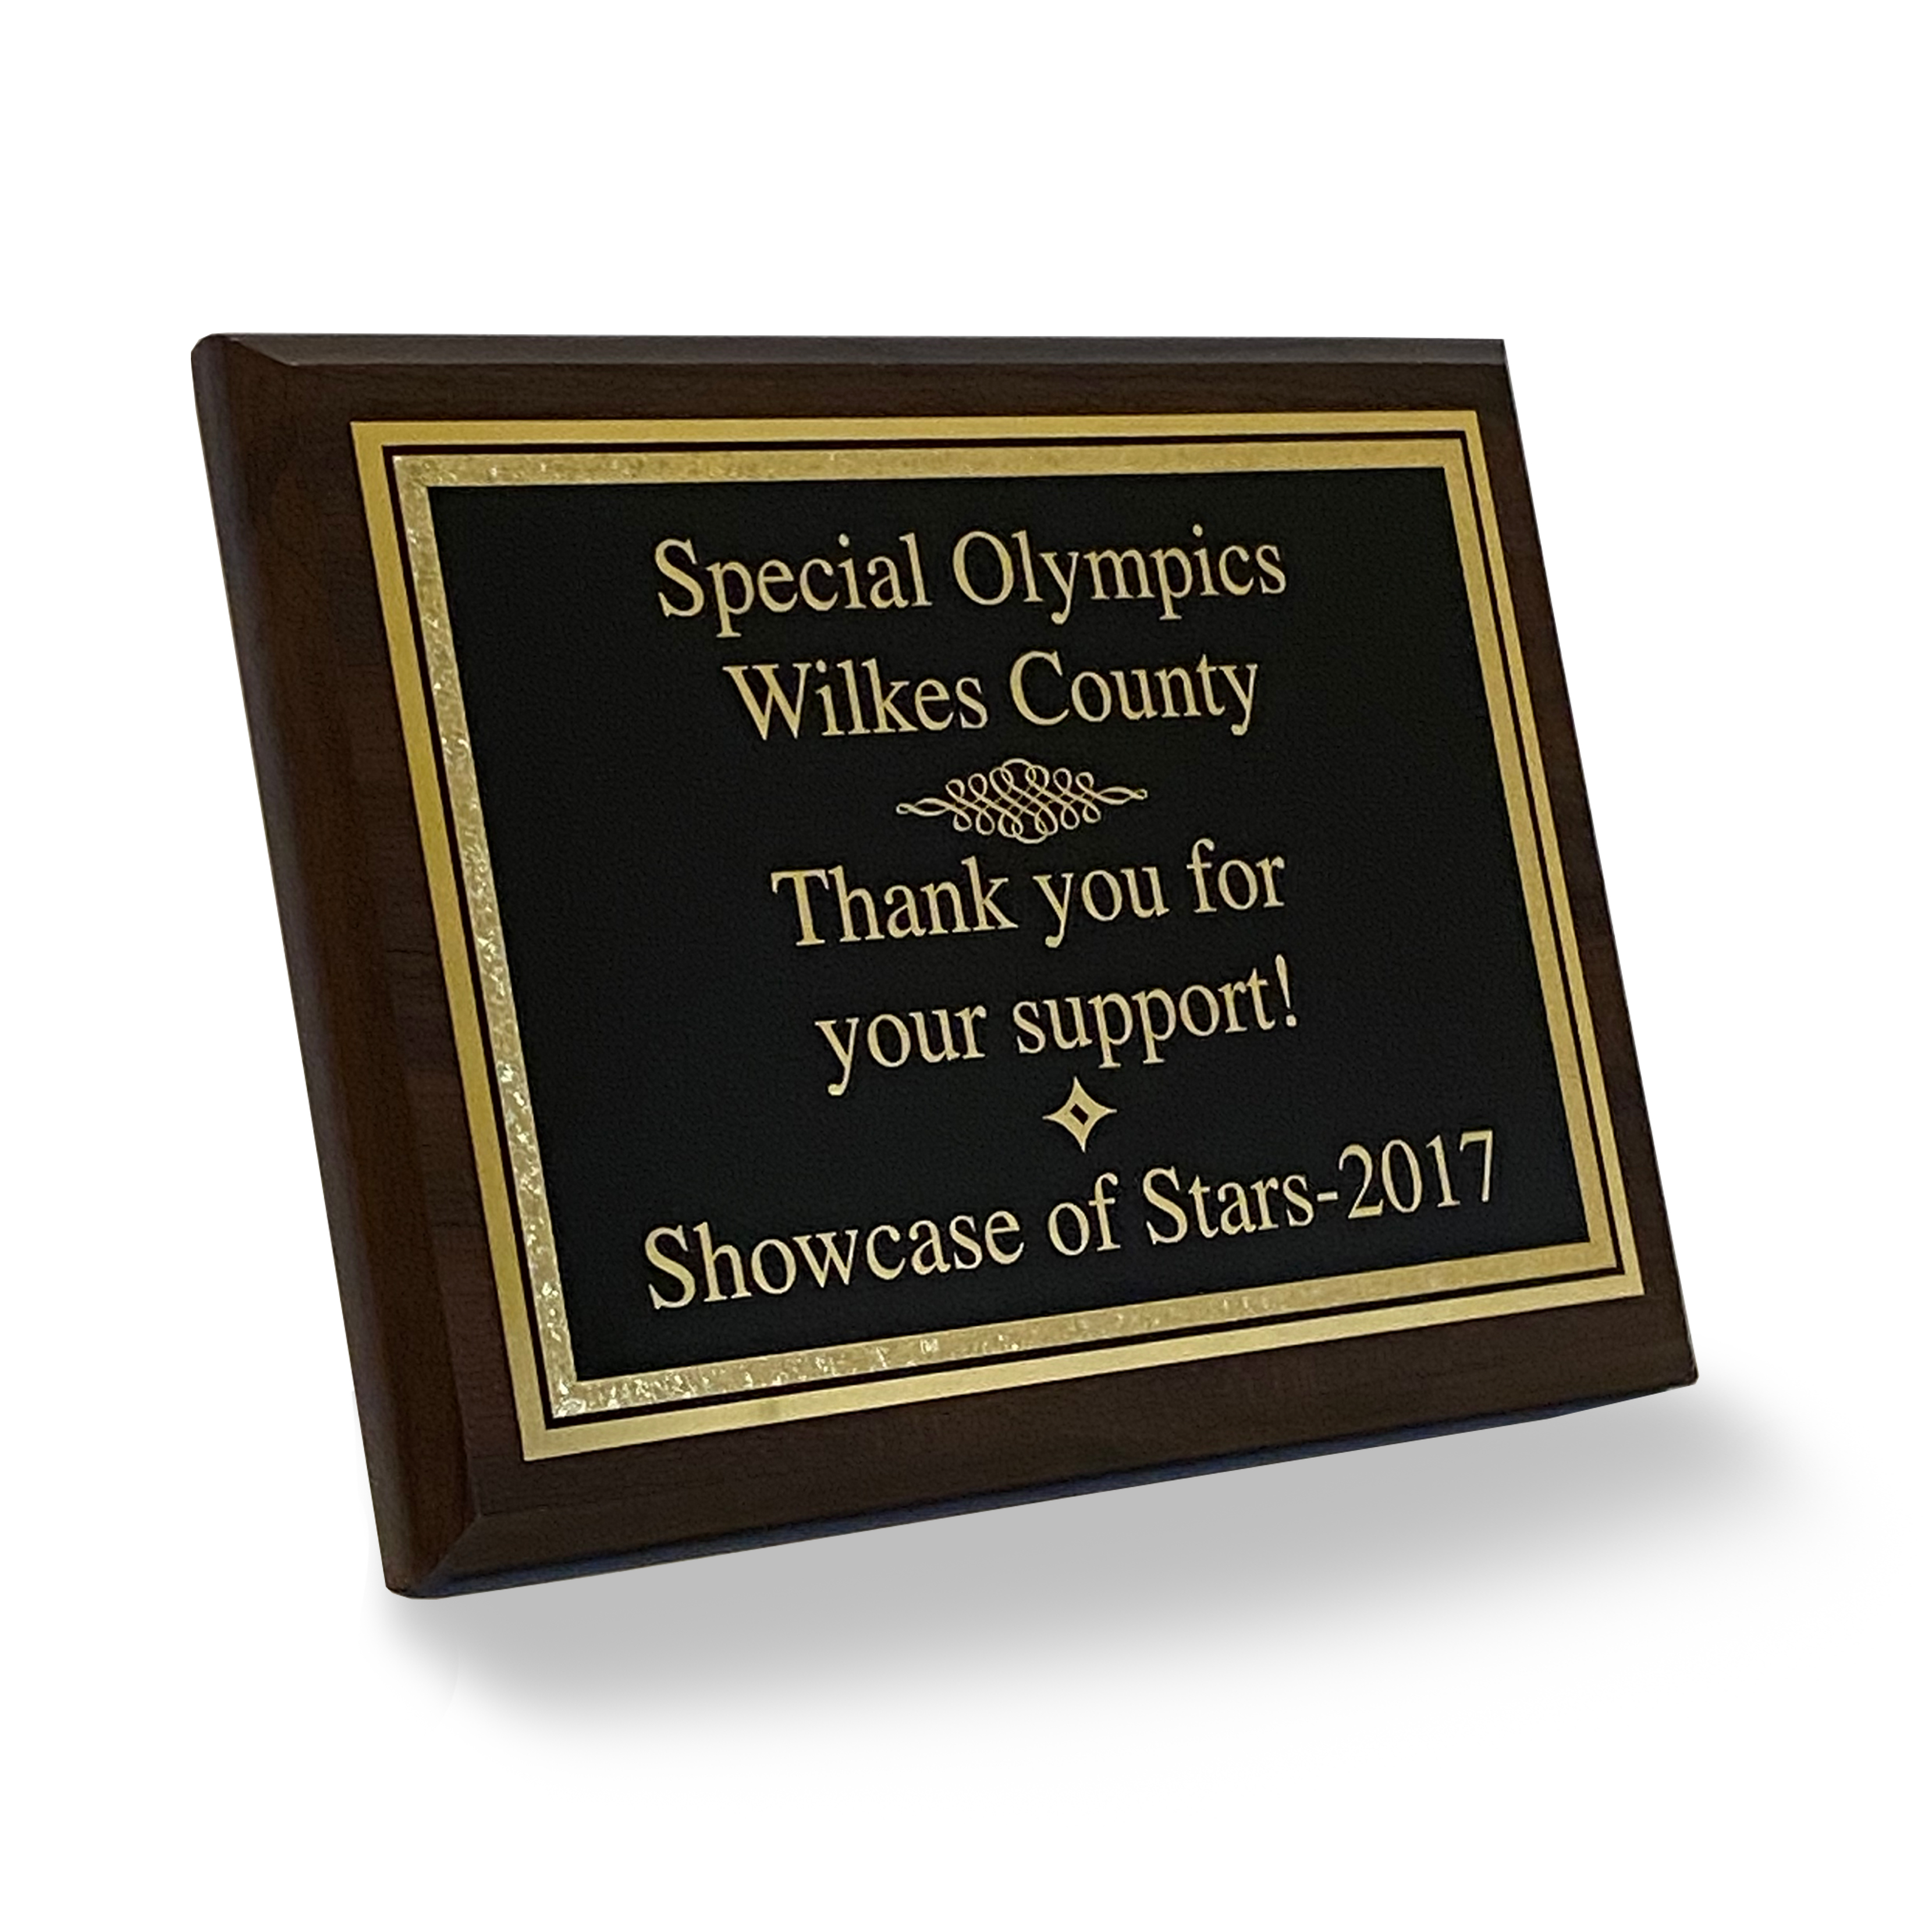 2017 Wilkes County Special Olympics